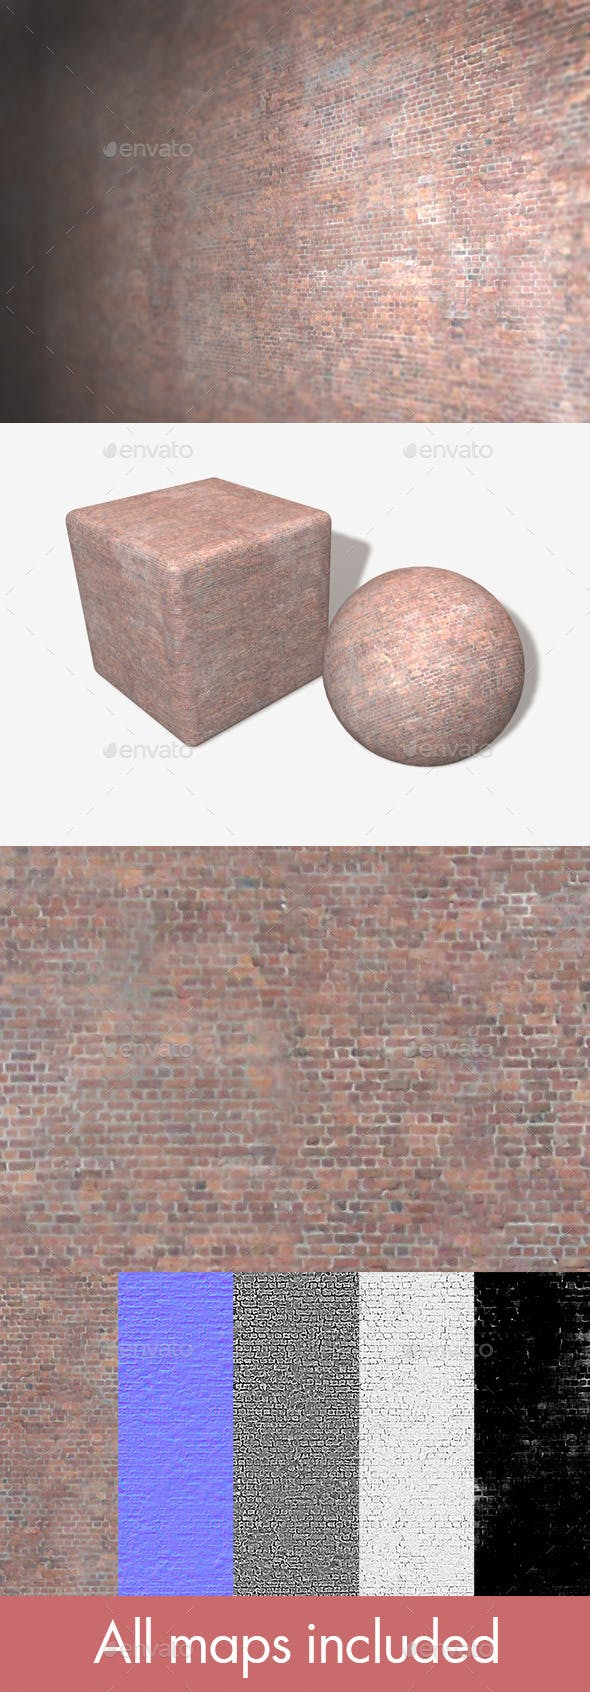 Tiny Brick Building Seamless Texture - 3DOcean Item for Sale